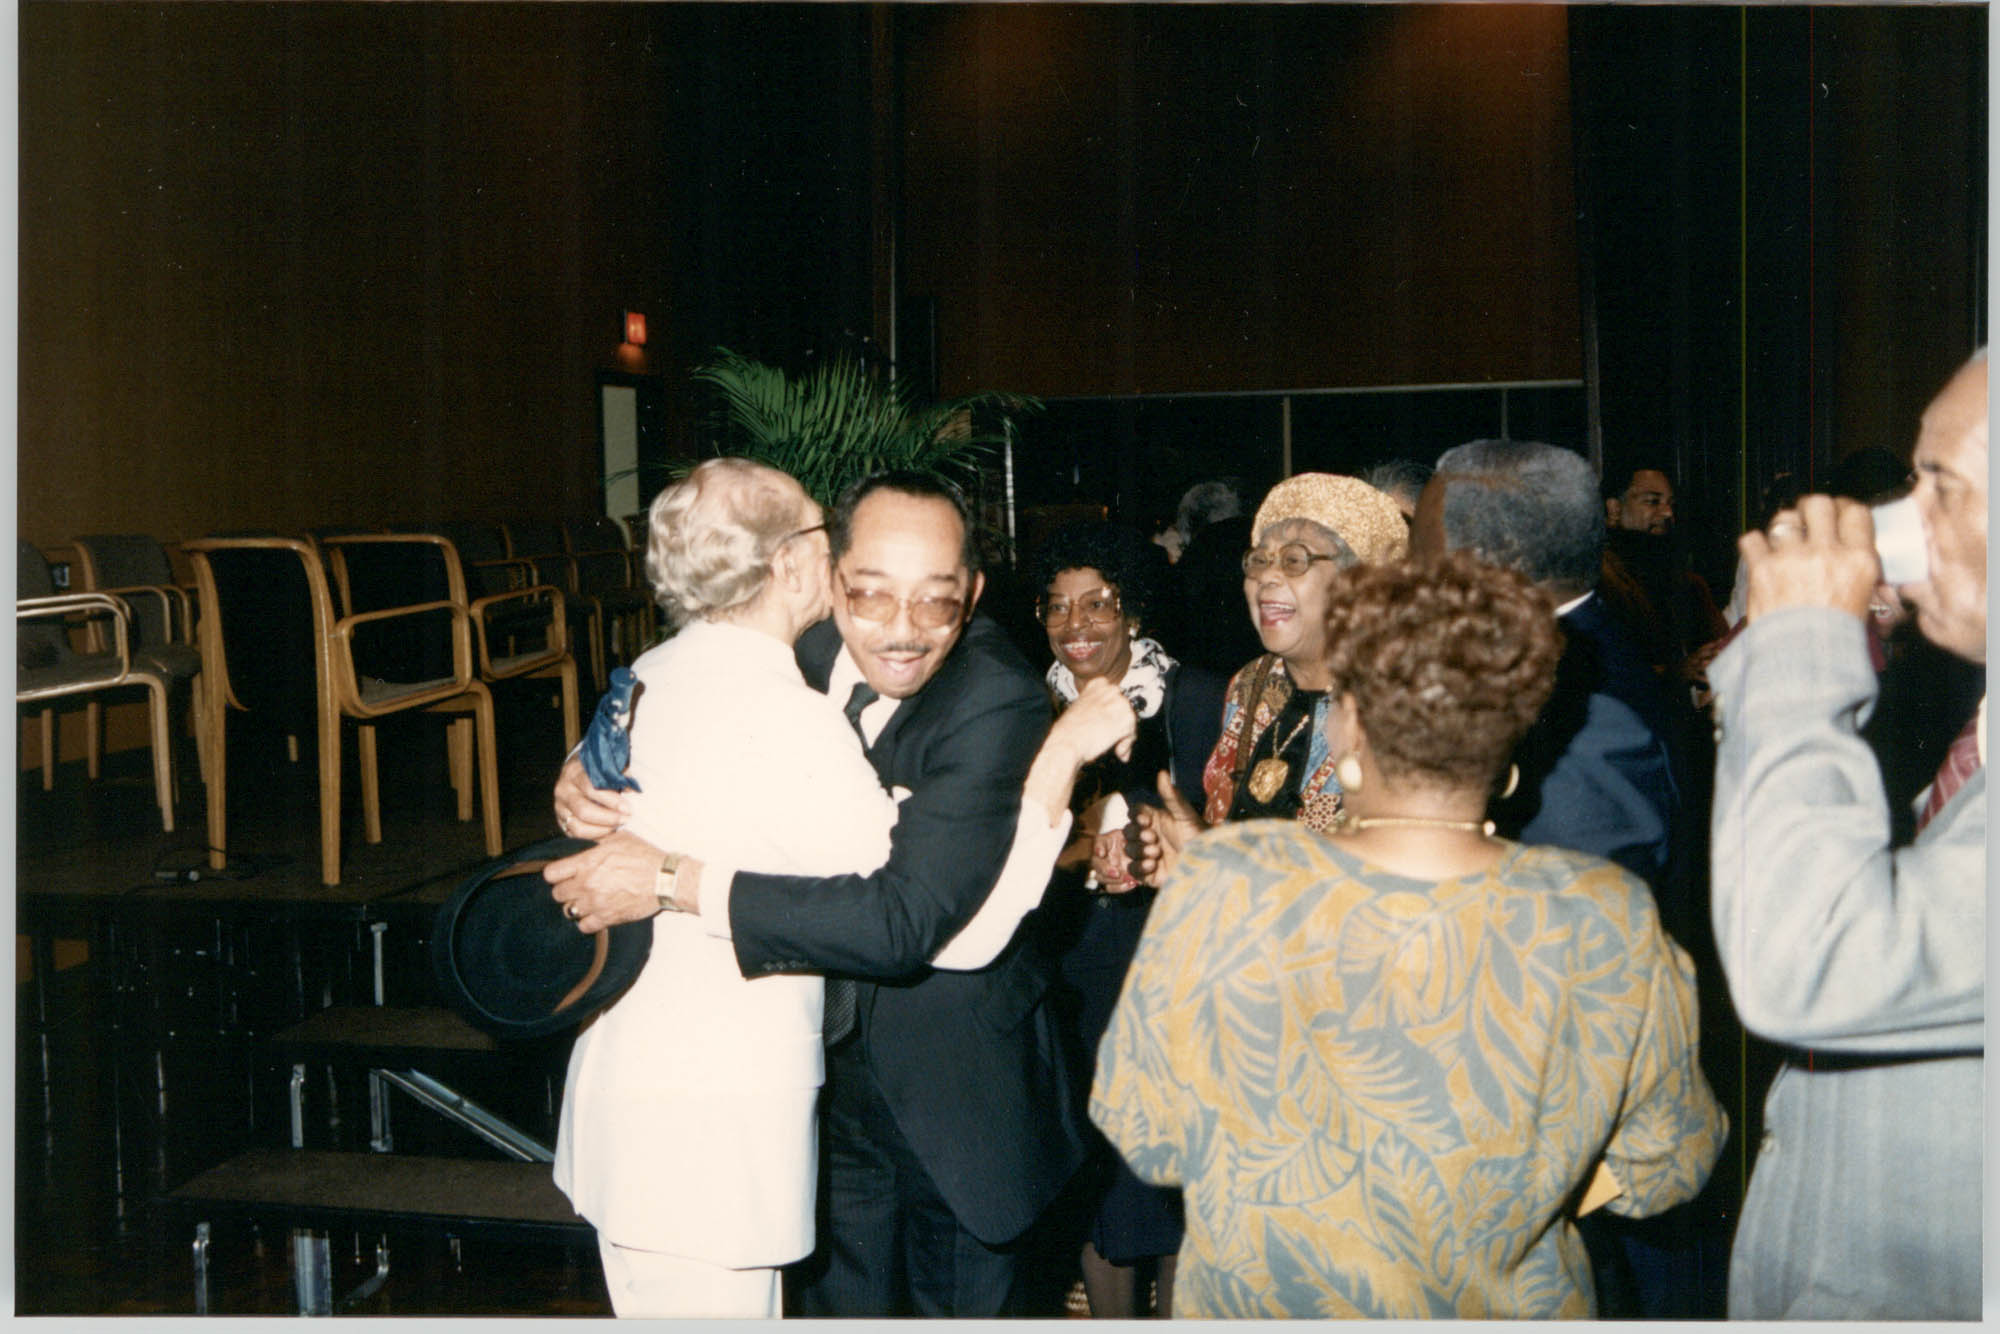 Photograph of Eugene C. Hunt and Others at a College of Charleston Event